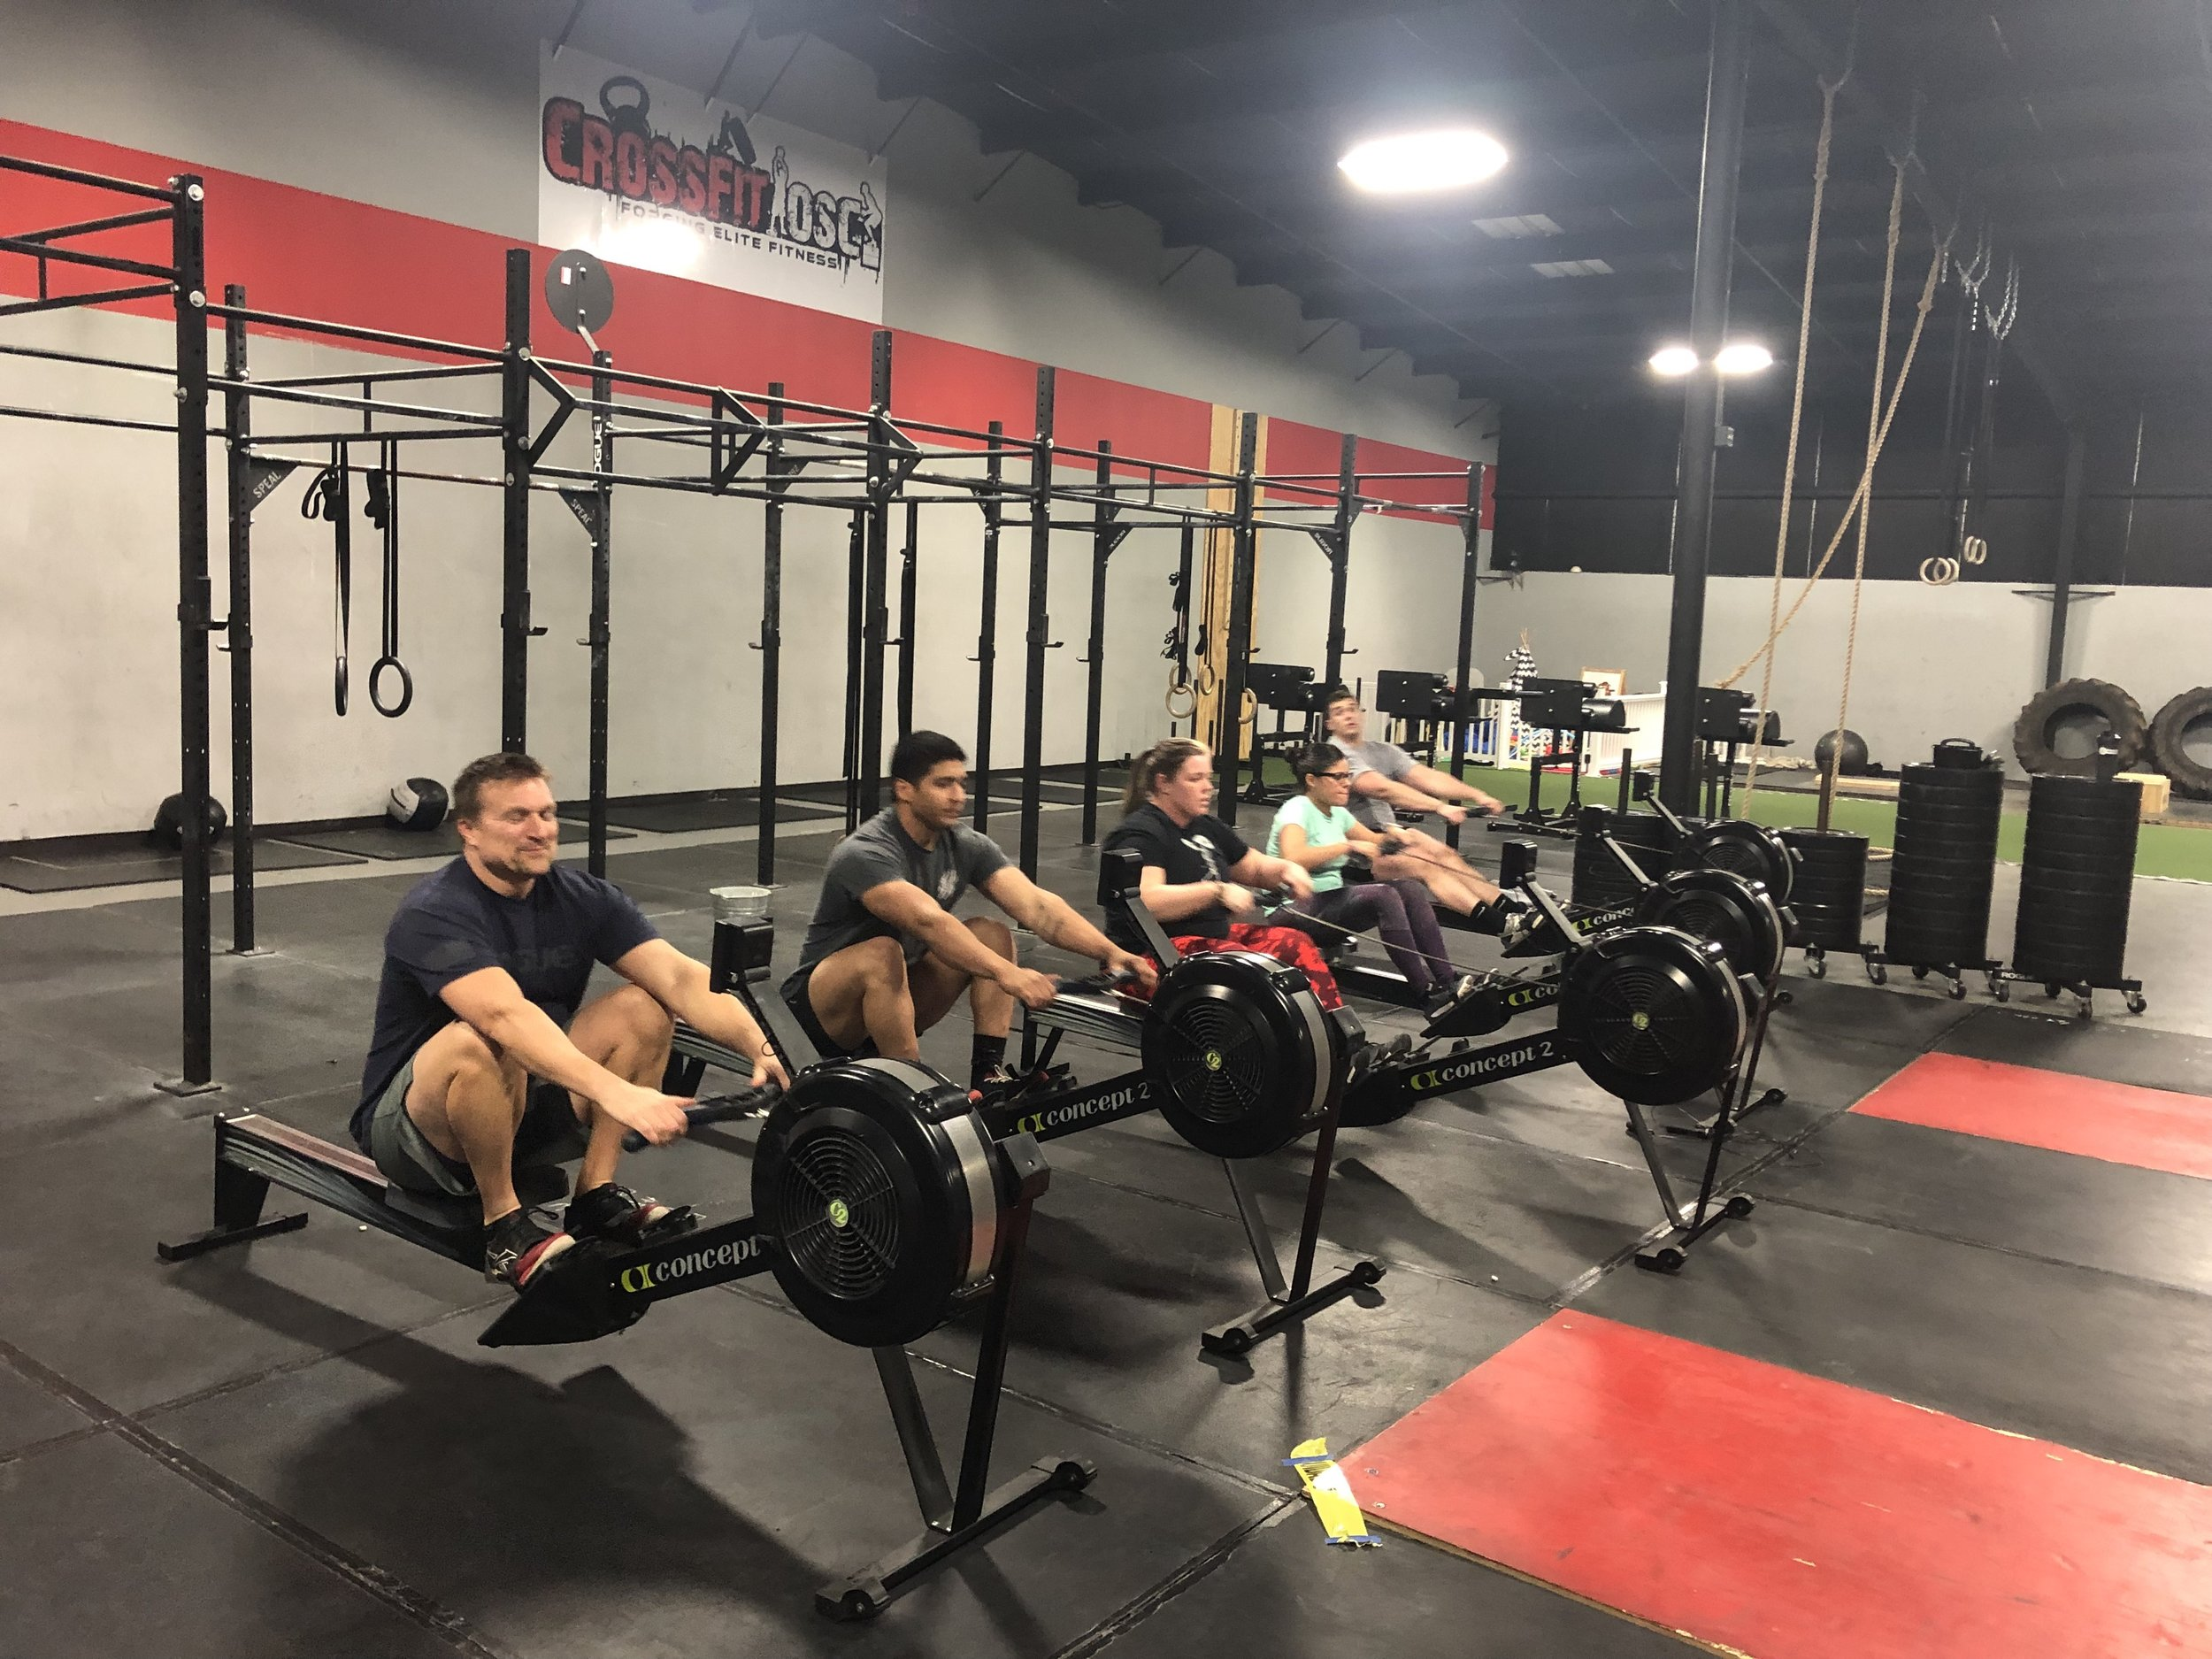 Accountability - Without a doubt, consistency in your training is the most important aspect of fitness success and forward progress. Our trainers at Crossfit OSC are experts in holding you accountable and will challenge you every time you show up.